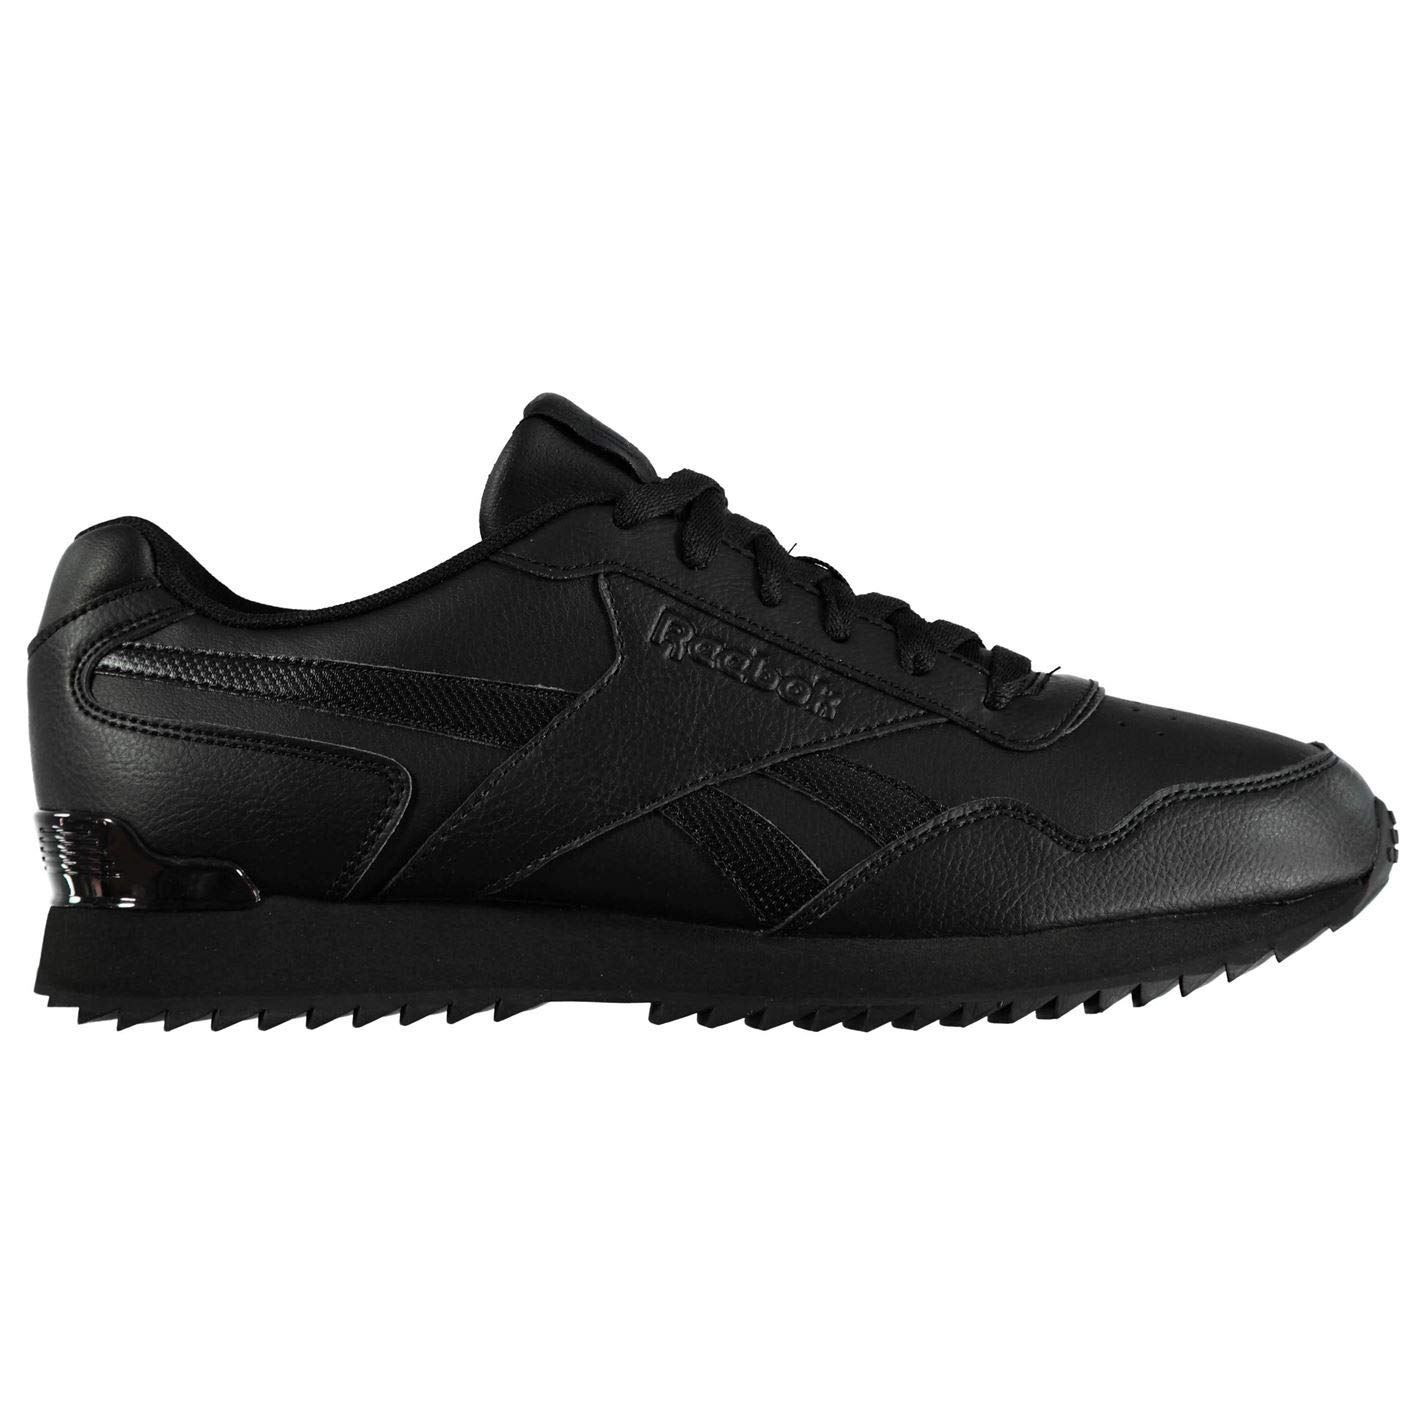 Reebok Men s Royal Glide Ripple Clip Trainers  Amazon.co.uk  Shoes   Bags a8136be61